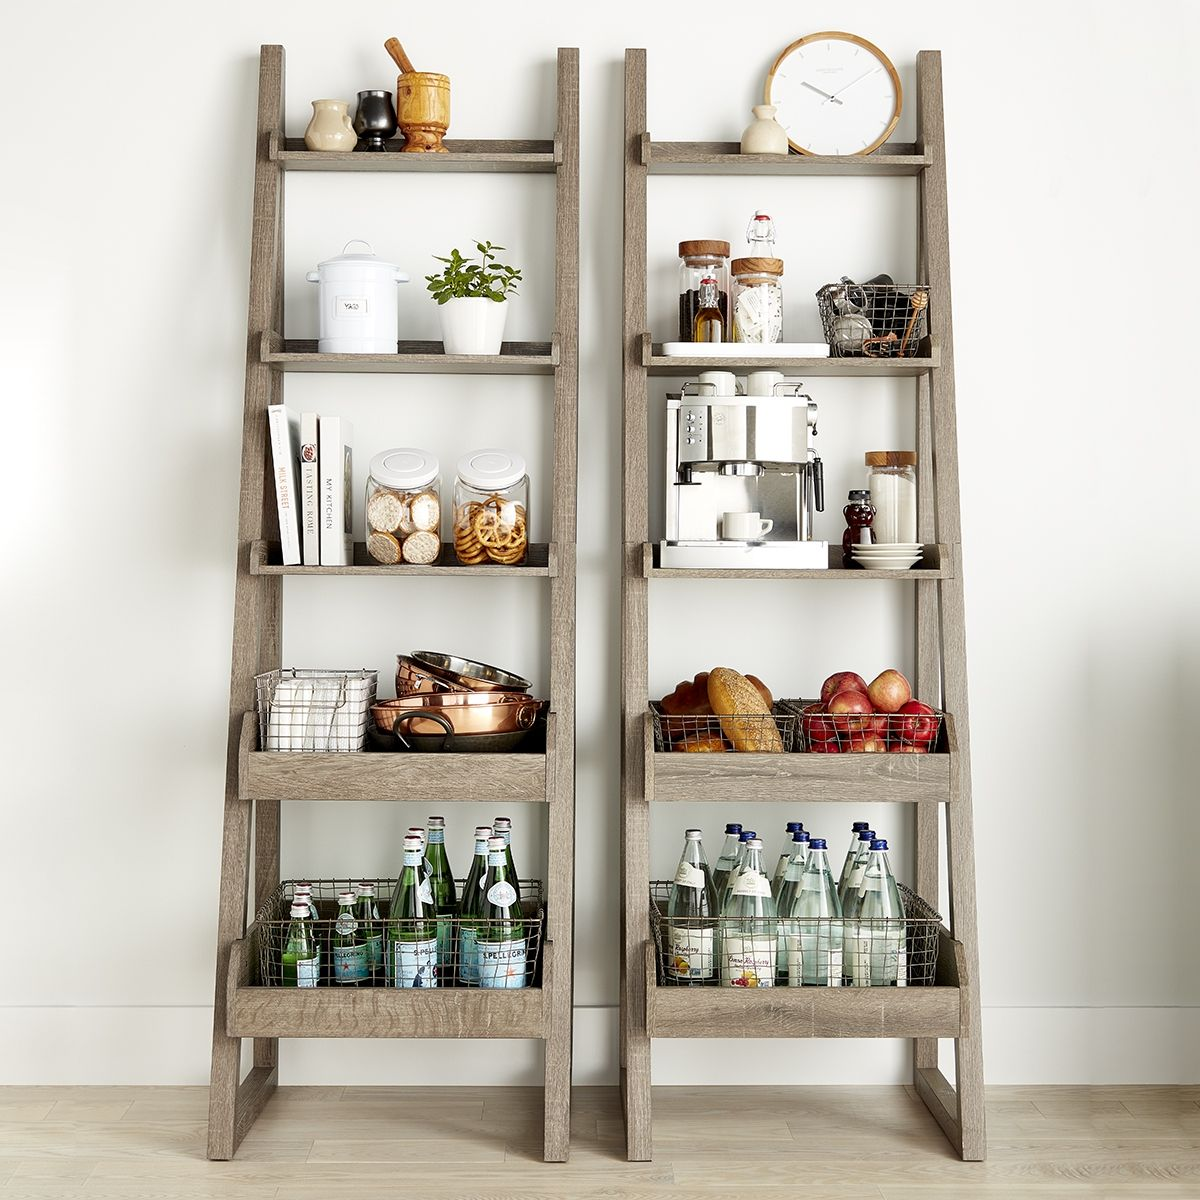 Make Use Of Vertical Space Bookshelves And Free Standing Shelving Are A Wonderful Addition To A Space Adding A Narrow Bookshelf Free Standing Shelves Shelves